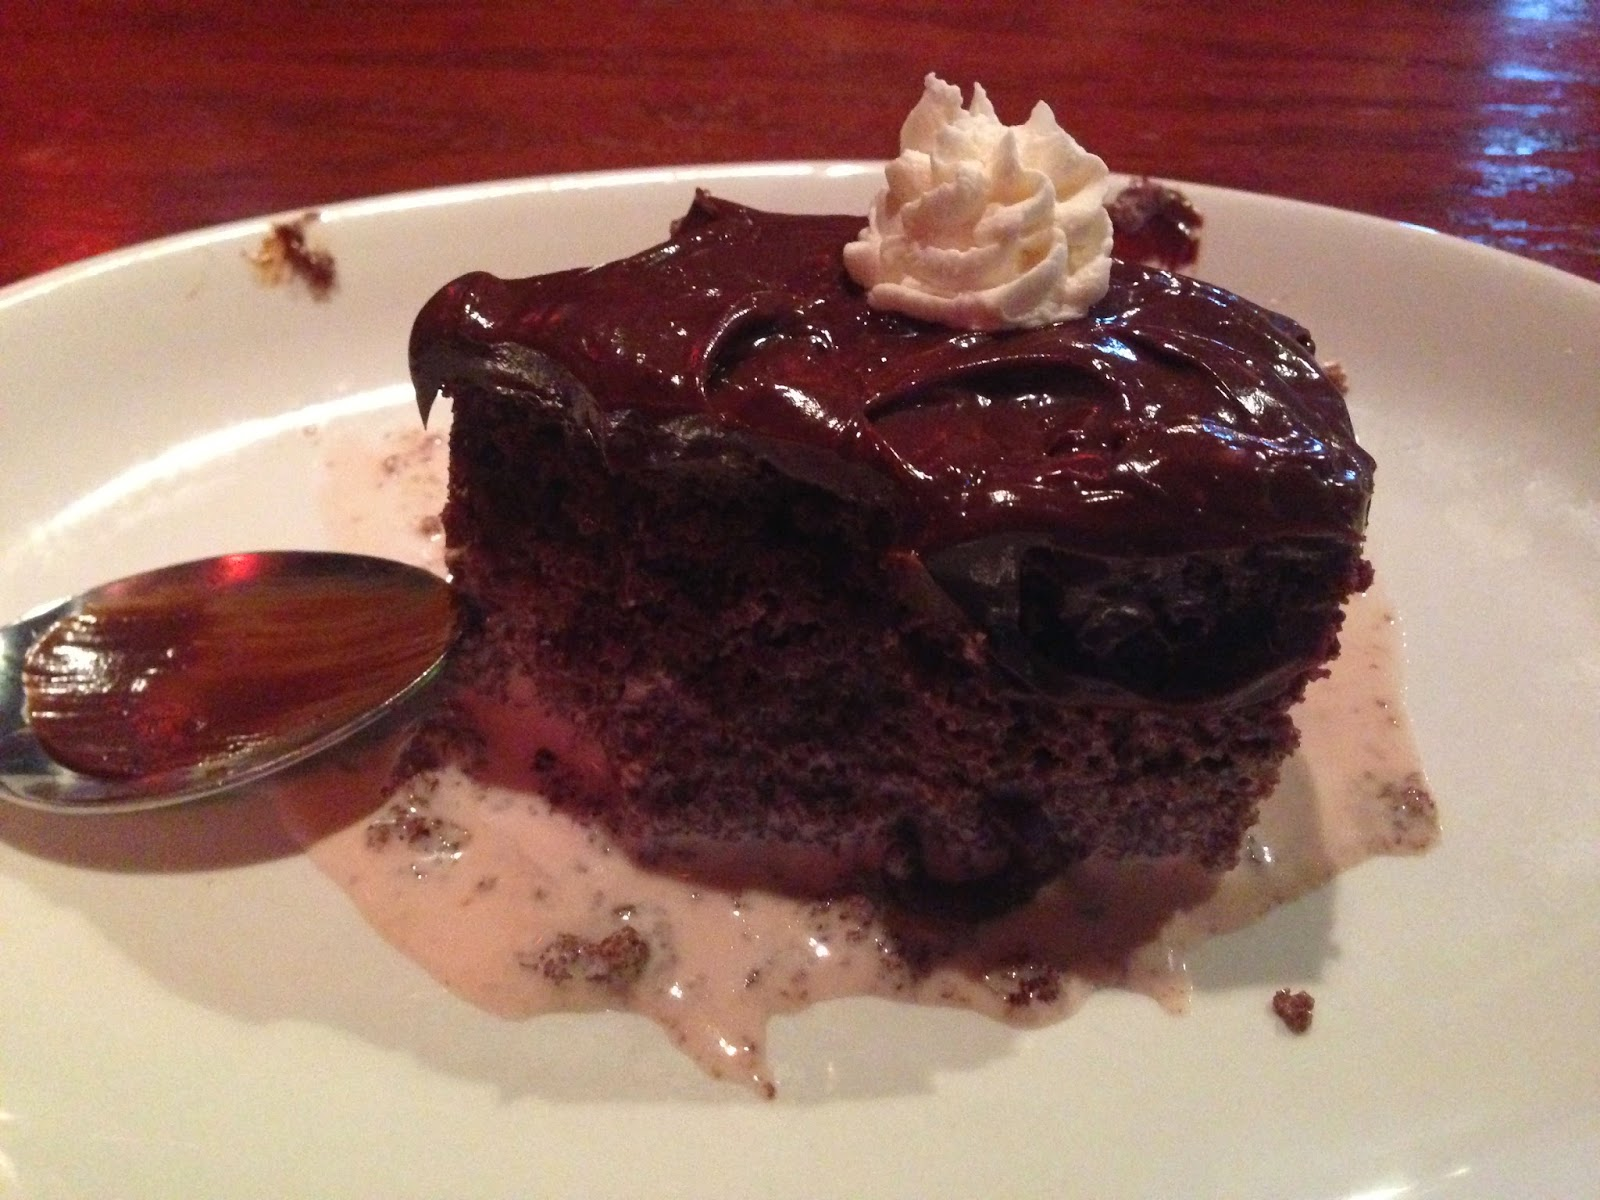 ... Not: I is for Inedible, or How To Ruin A Perfectly Good Chocolate Cake